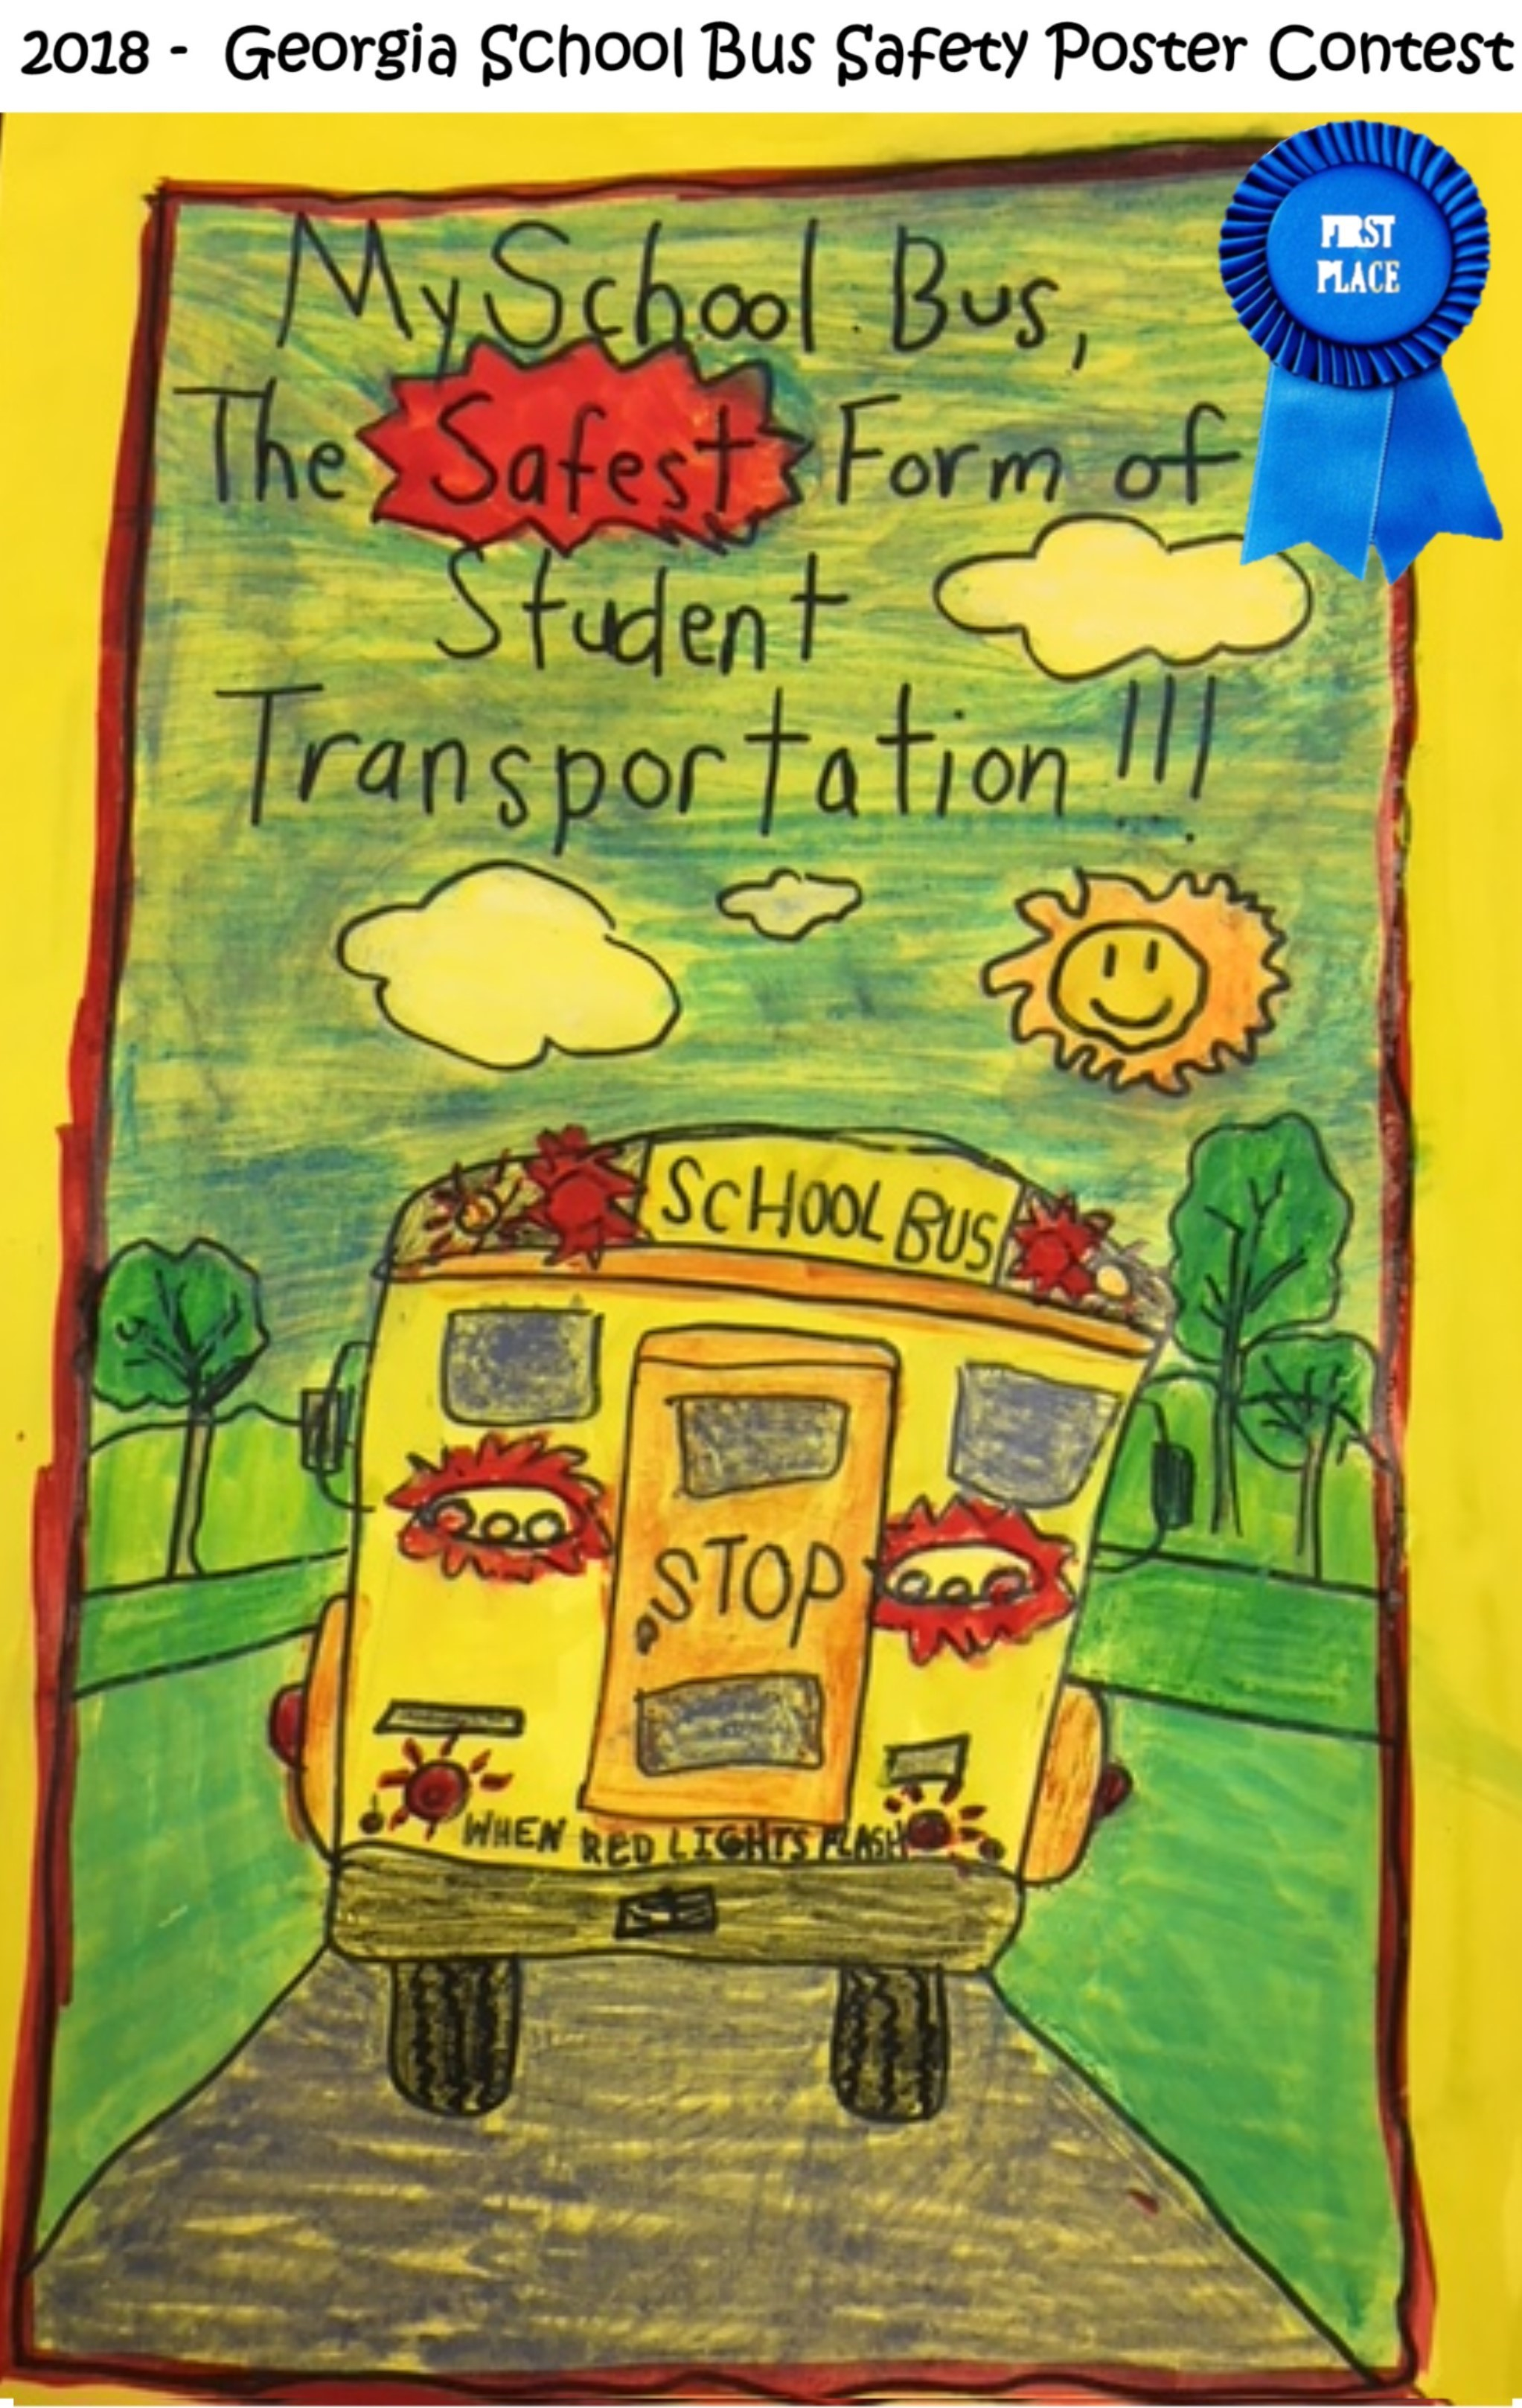 School Bus Safety Poster Contest Winners 2